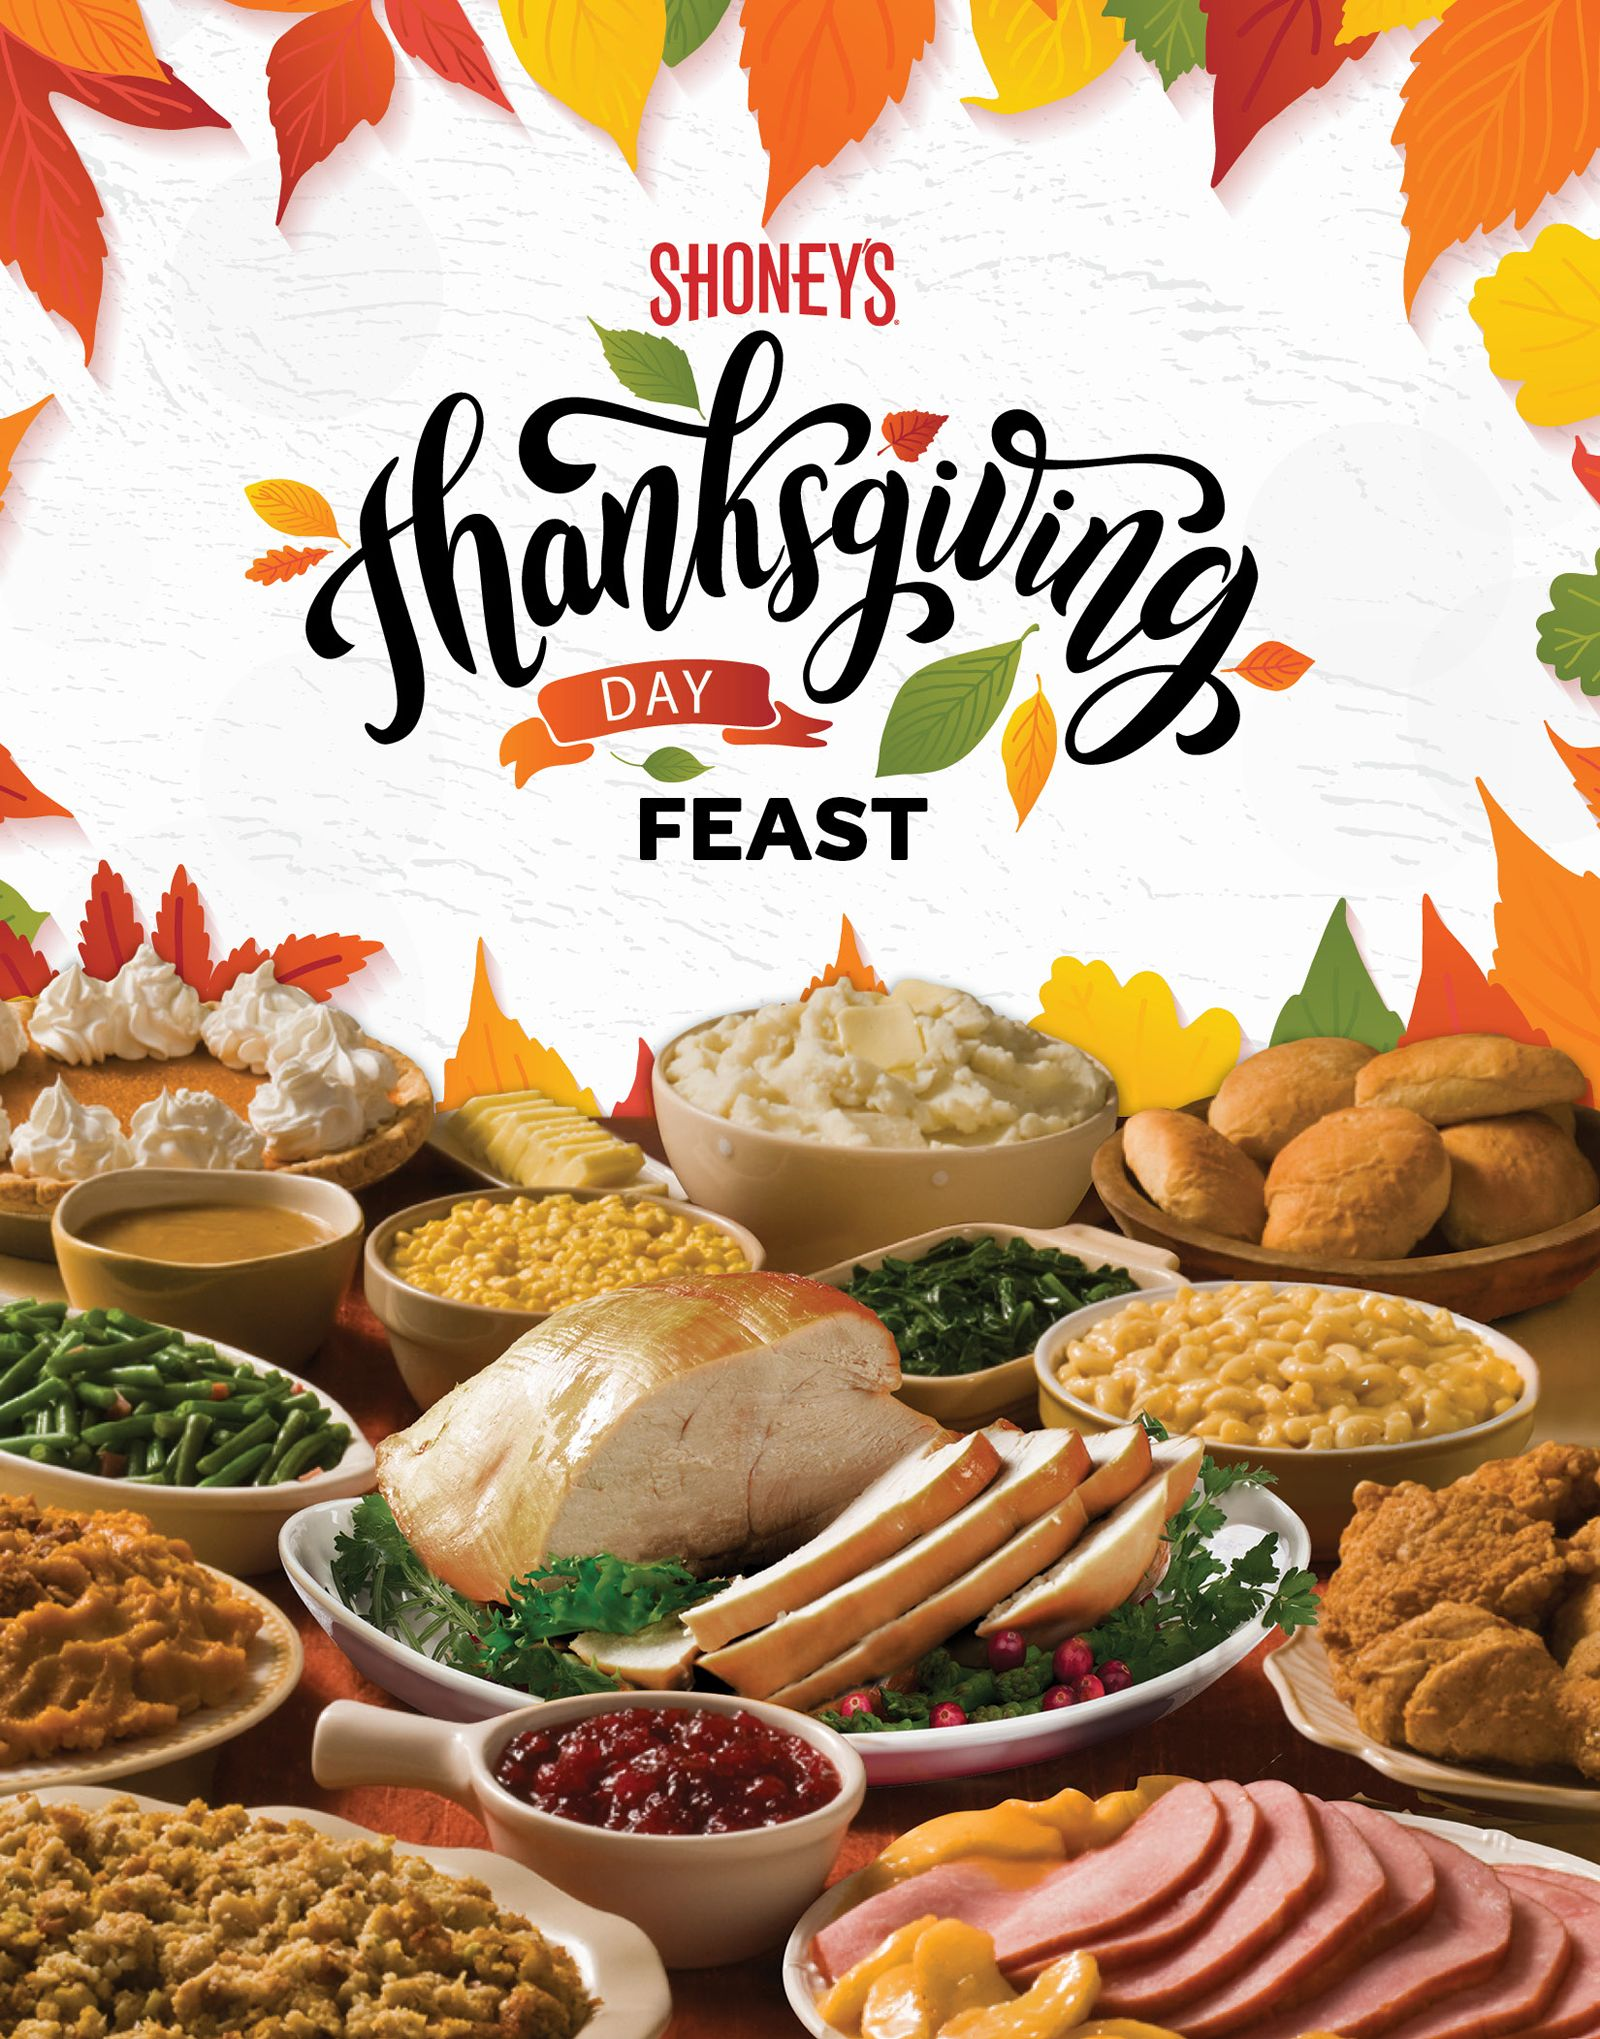 Shoney's Doors Will be Wide Open on Thursday, November 28, for a Spectacular All You Care To Eat, Freshly Prepared Thanksgiving Day Feast and a FREE slice of Pumpkin Pie